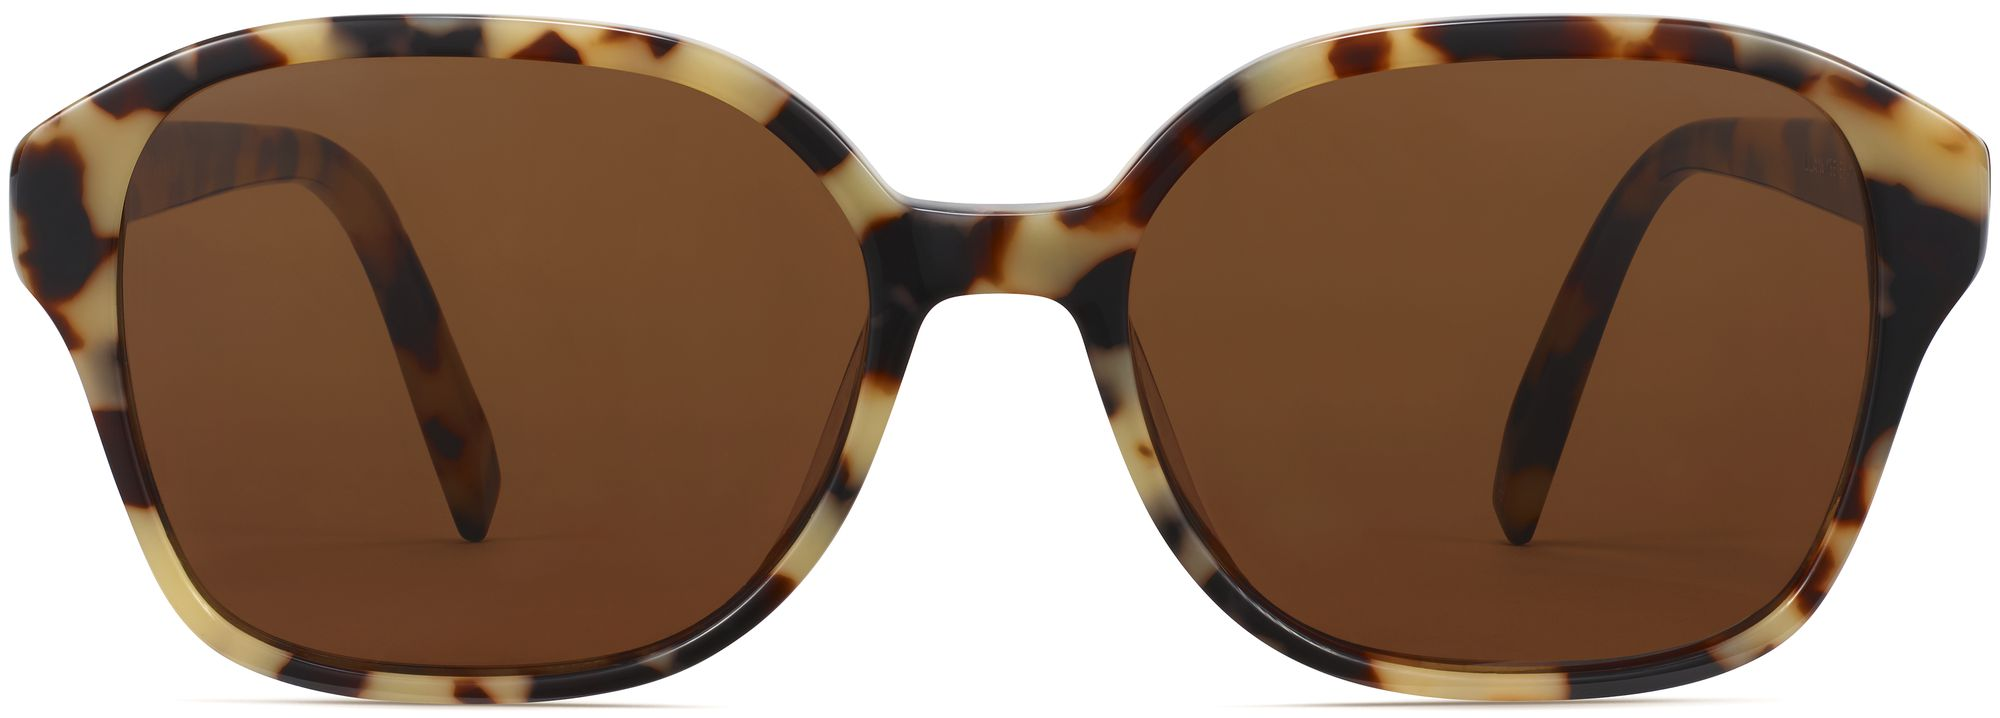 Front View Image of Lila Sunglasses Collection, by Warby Parker Brand, in Marzipan Tortoise Color